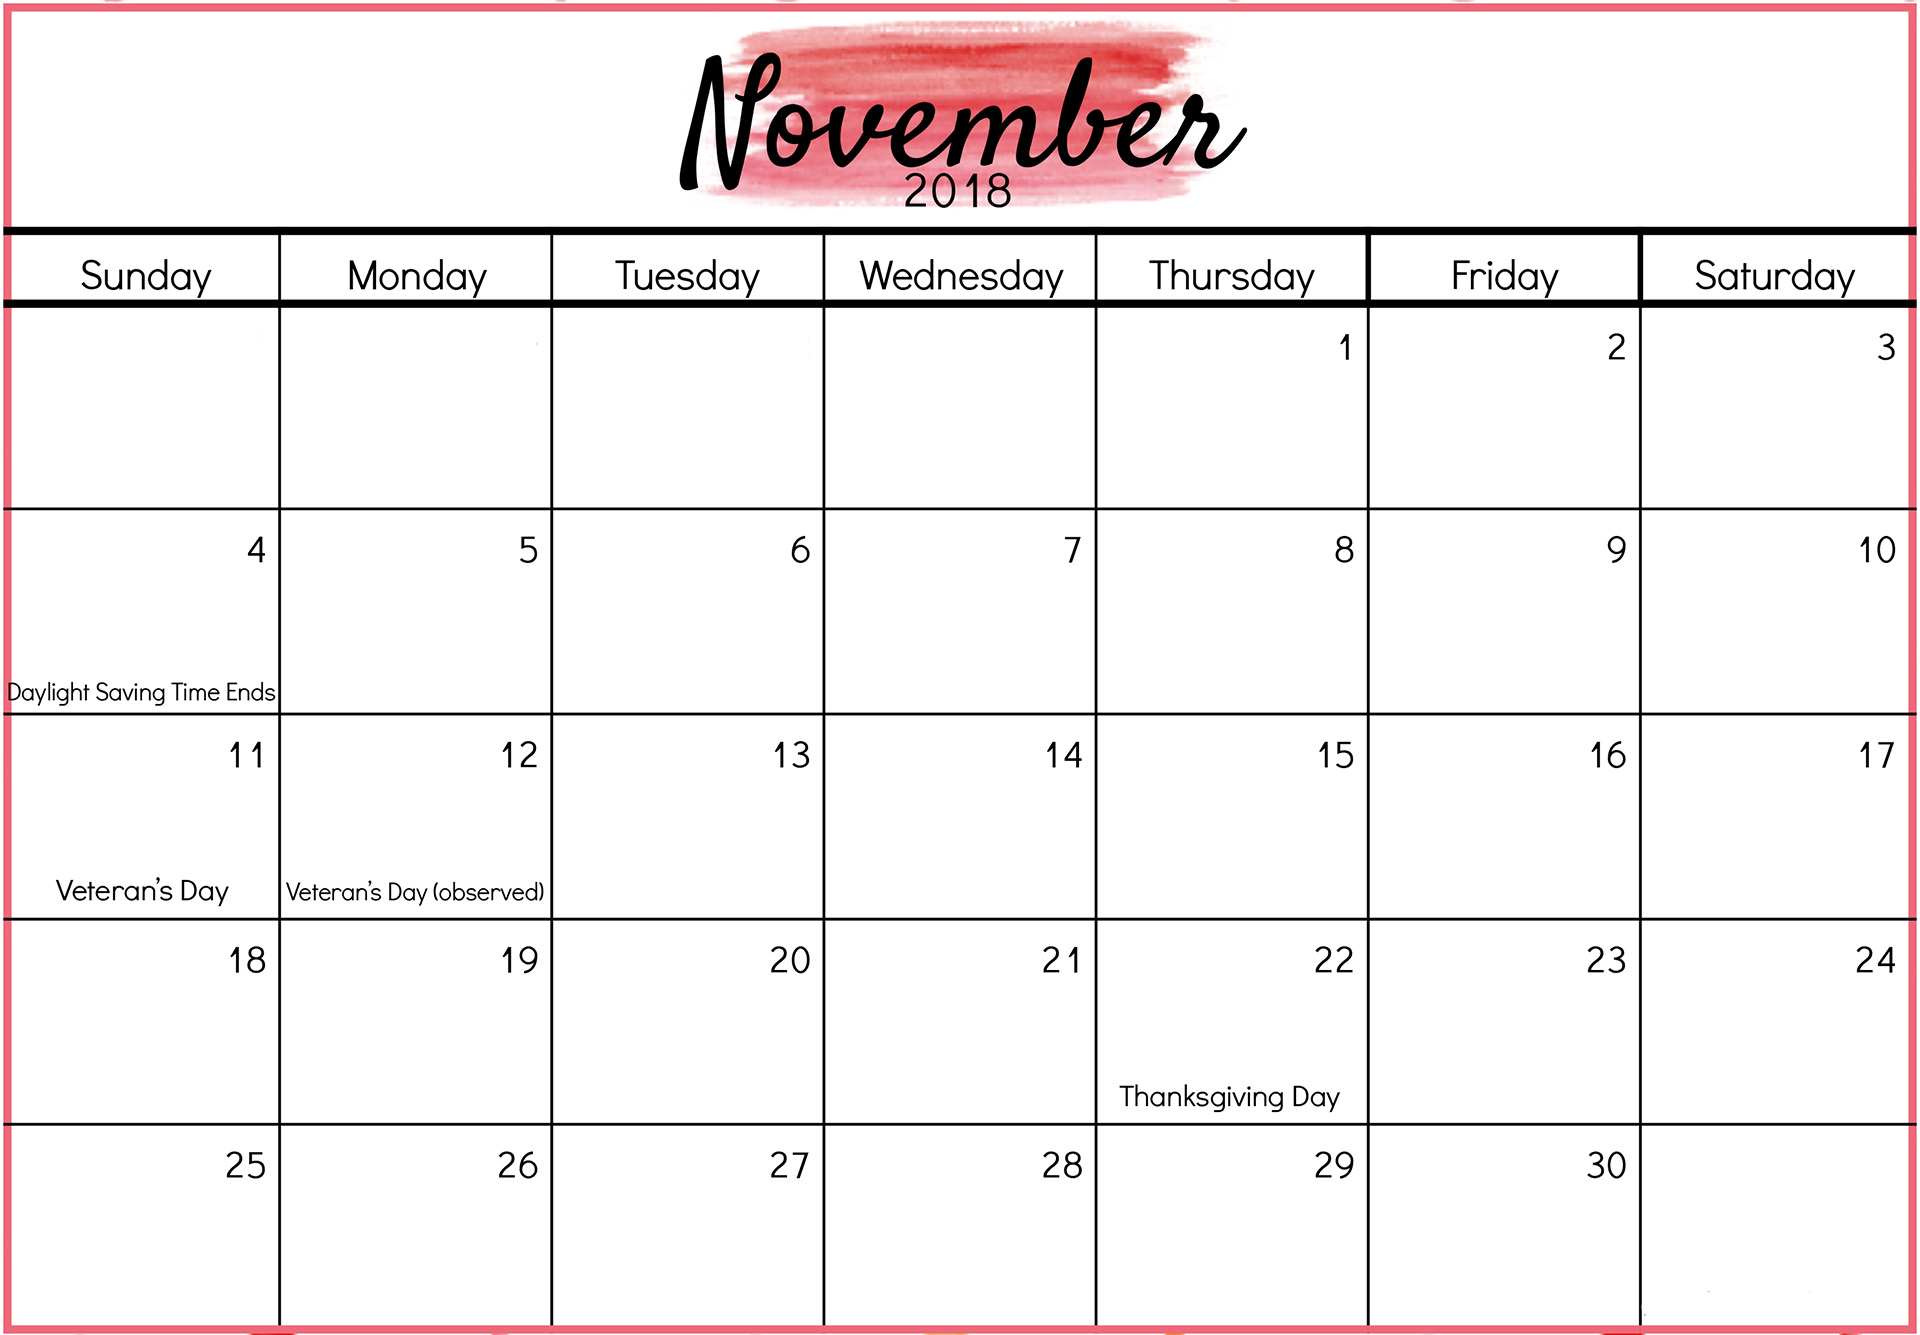 Blank November 2018 Calendar Printable Template November Calendar 2018 with Holidays